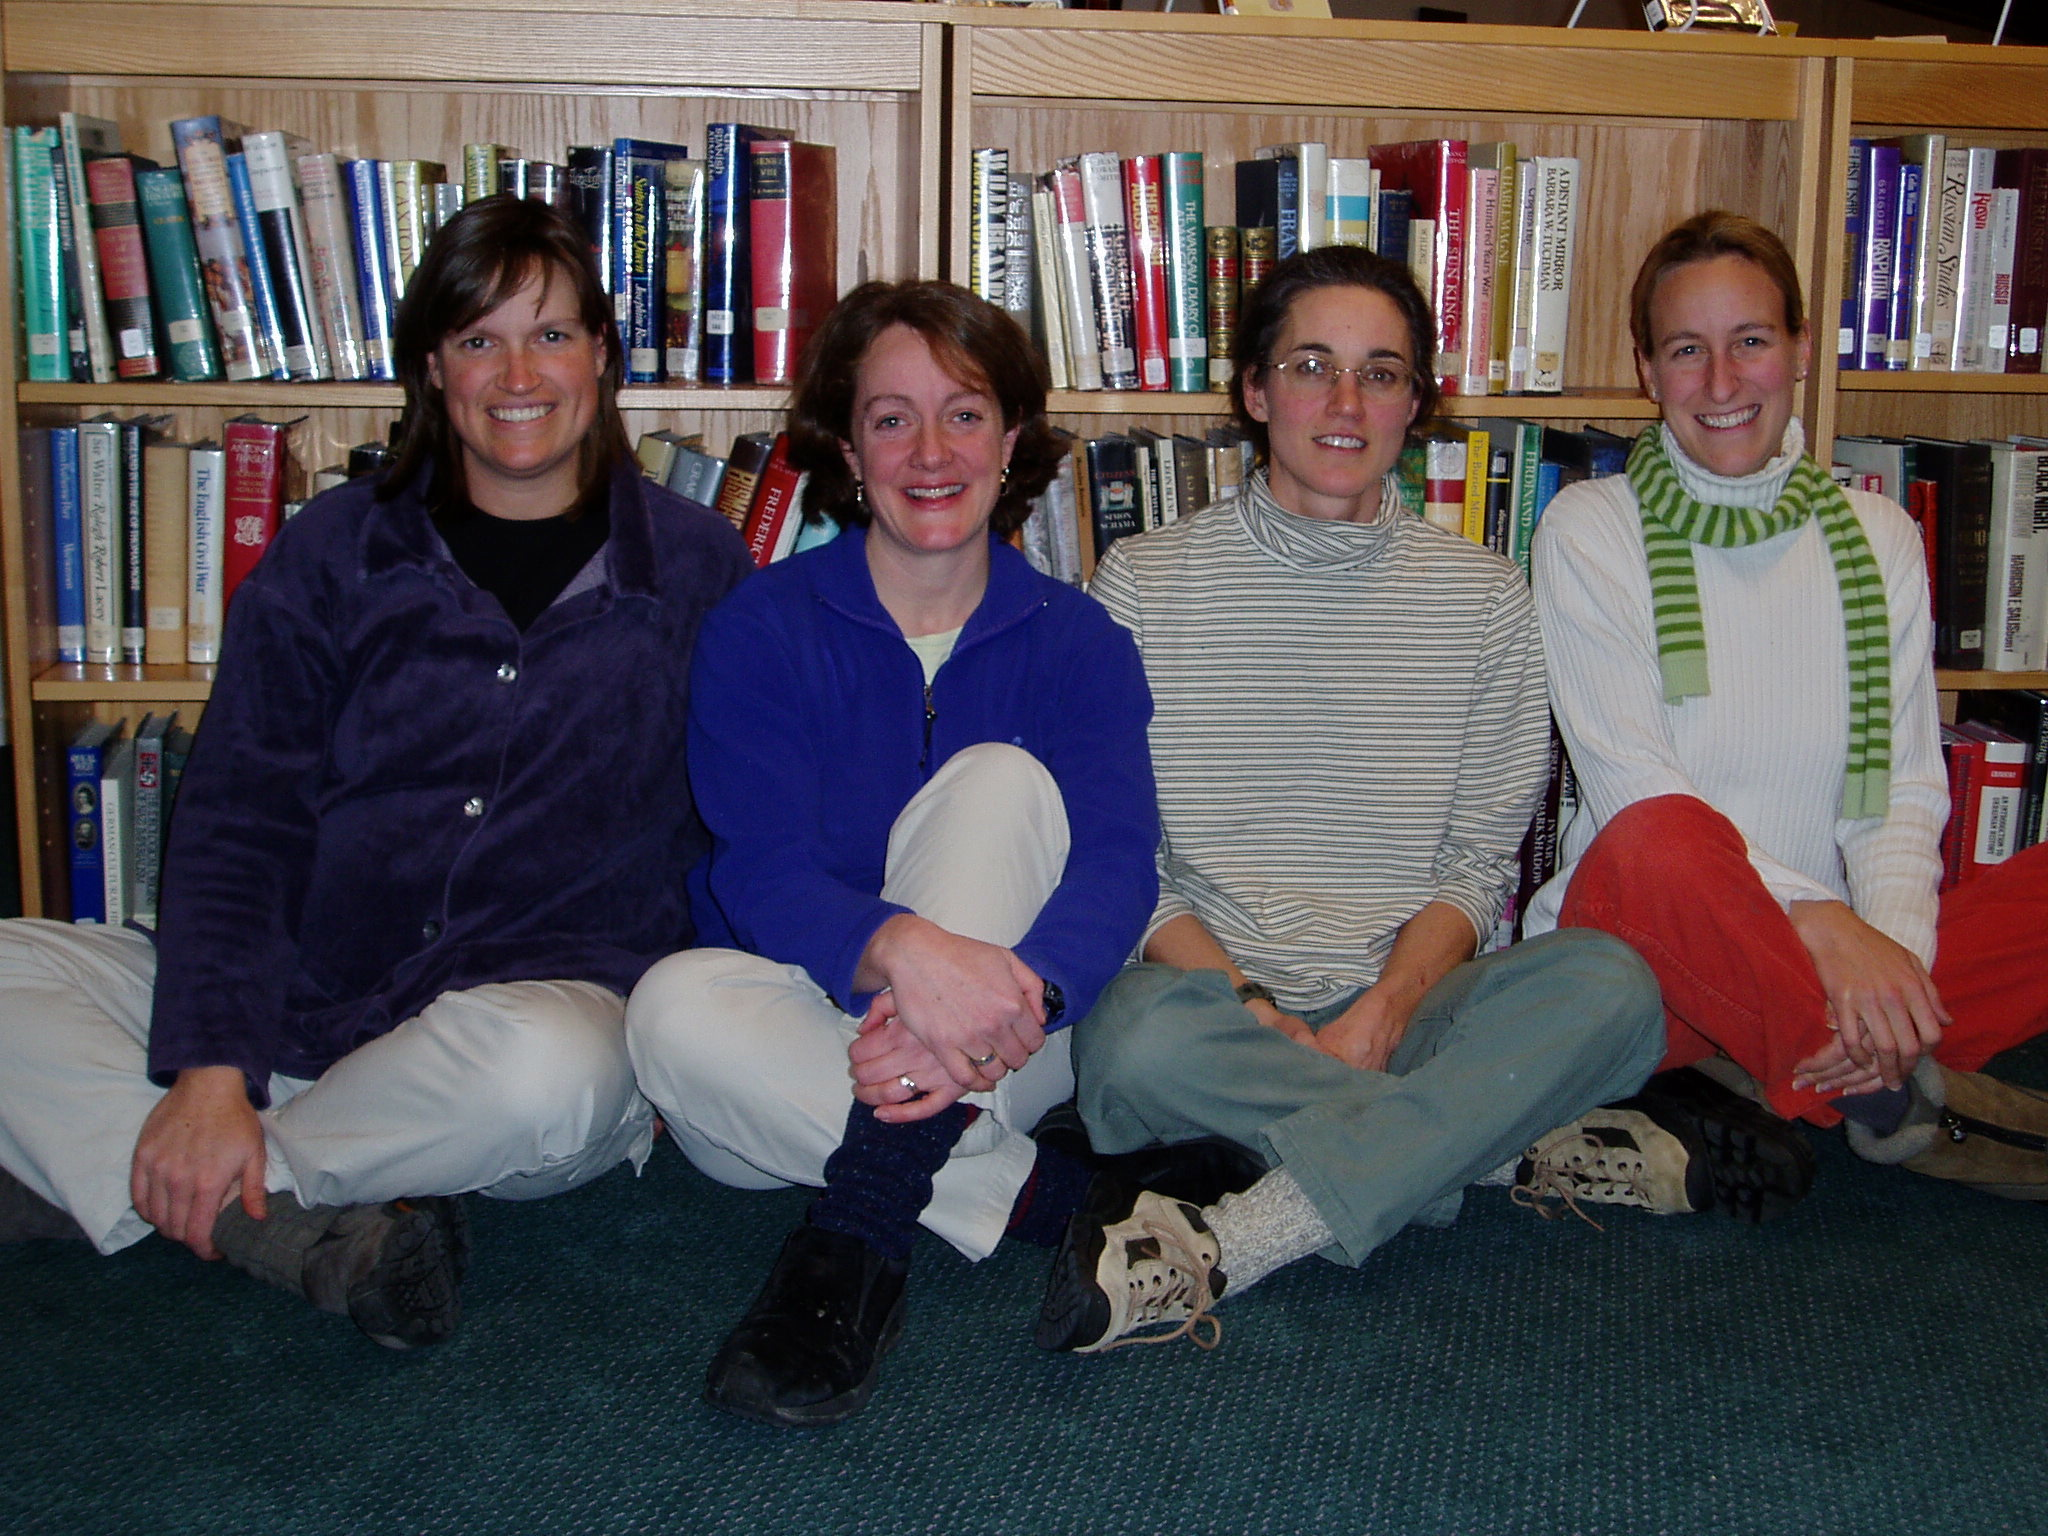 Jessie Griffiths, Jane Zanger, Jane Crosby, and Lisen Kern, Founders of Woodland Community School